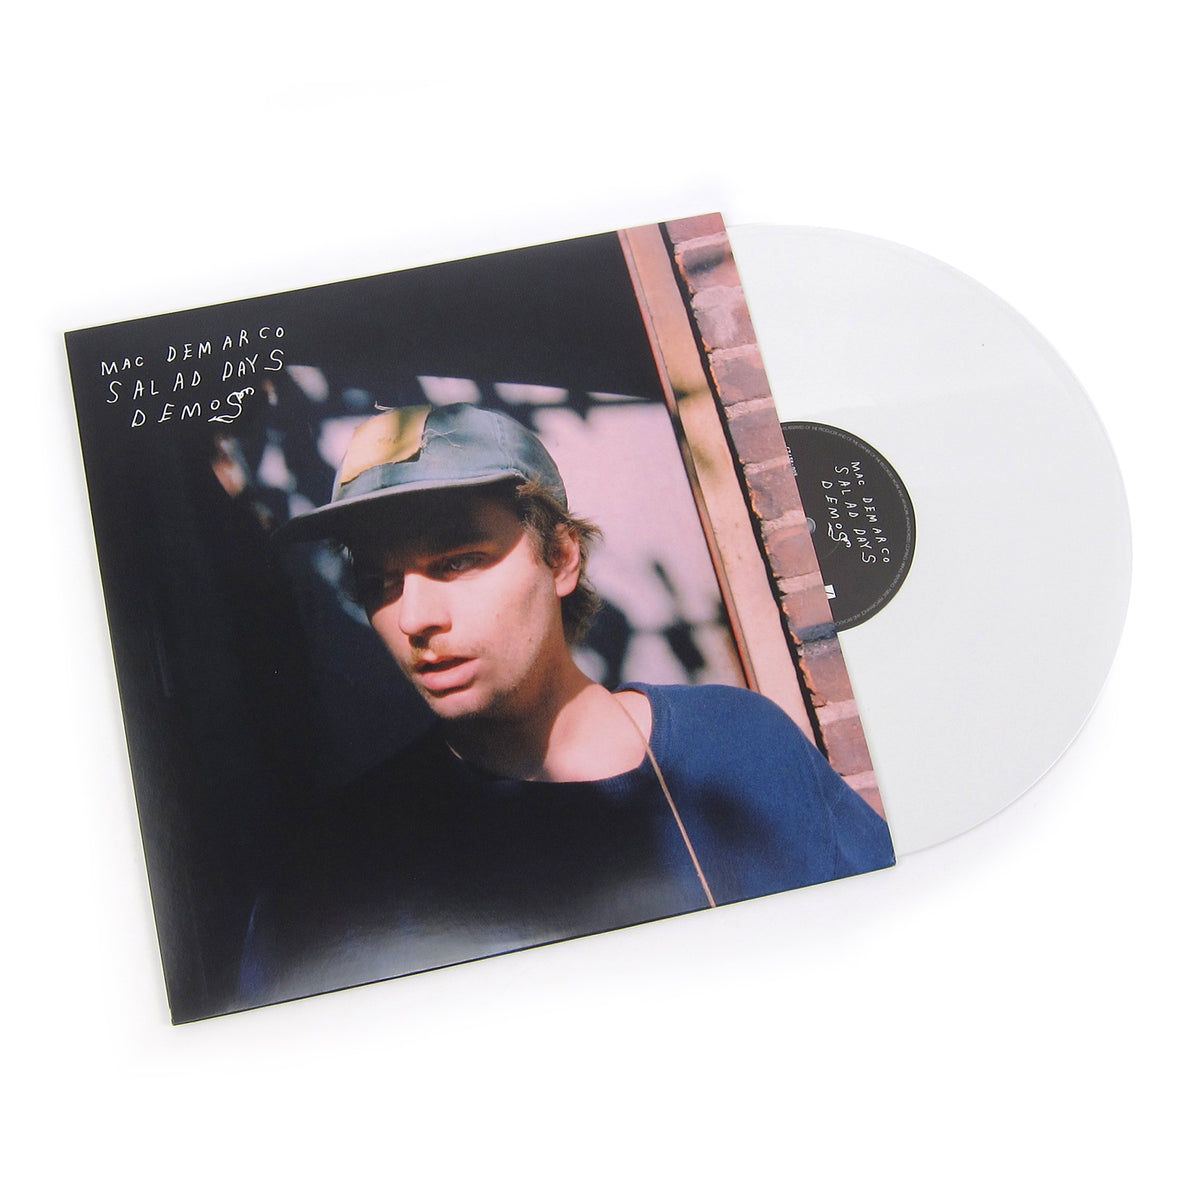 Mac DeMarco: Salad Days Demos (Colored Vinyl) Vinyl LP